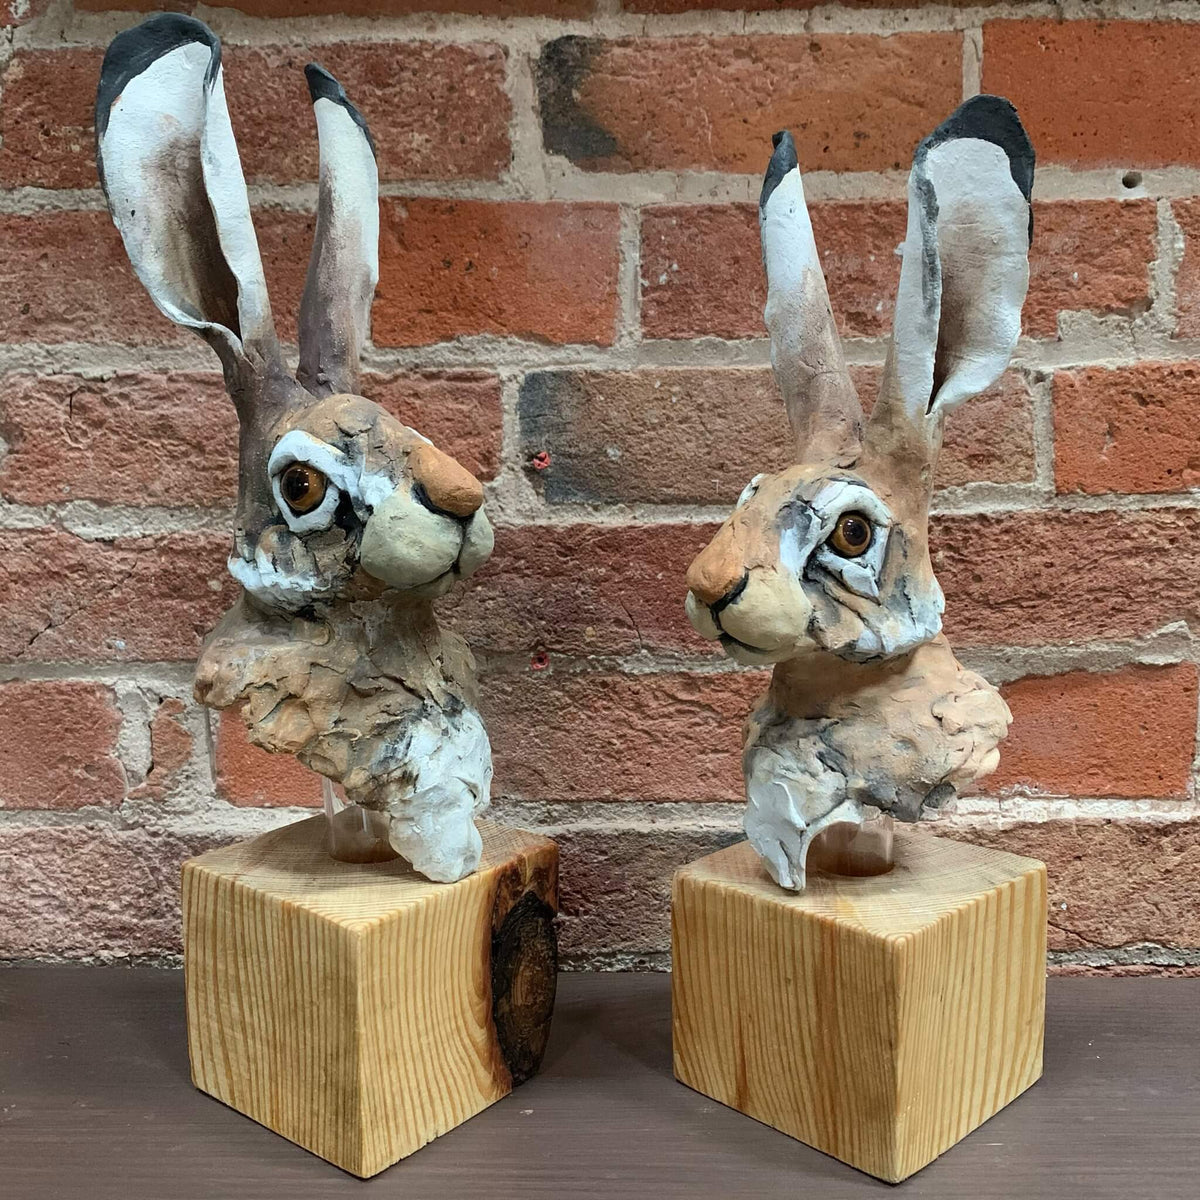 Ceramic Sculpture - Hare Head on Wooden Block by Louise Brown